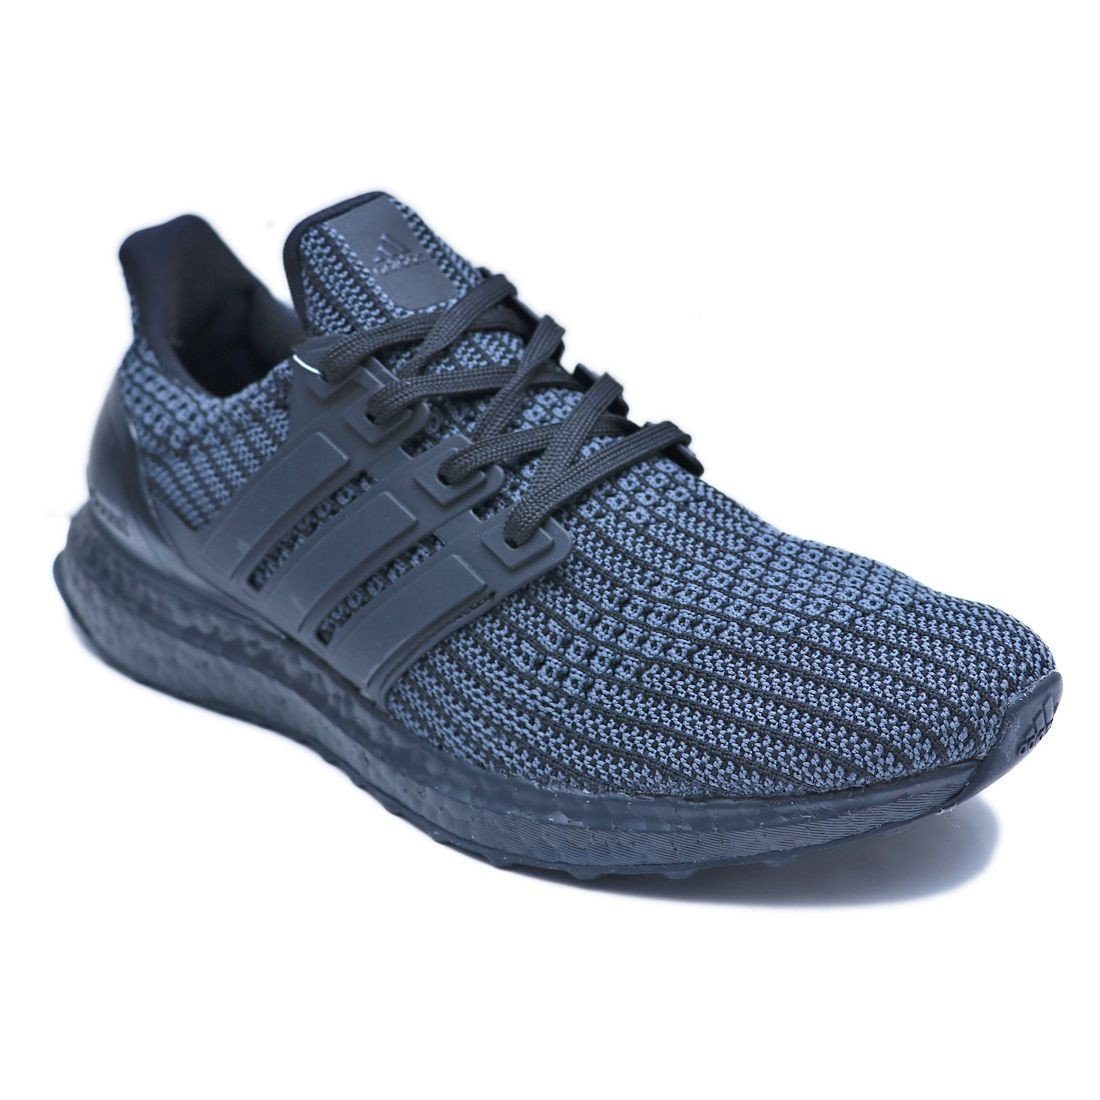 f639d8c8bb1aad Adidas UltraBoost 4.0 Low Black Running Shoes - Buy Adidas UltraBoost 4.0  Low Black Running Shoes Online at Best Prices in India on Snapdeal